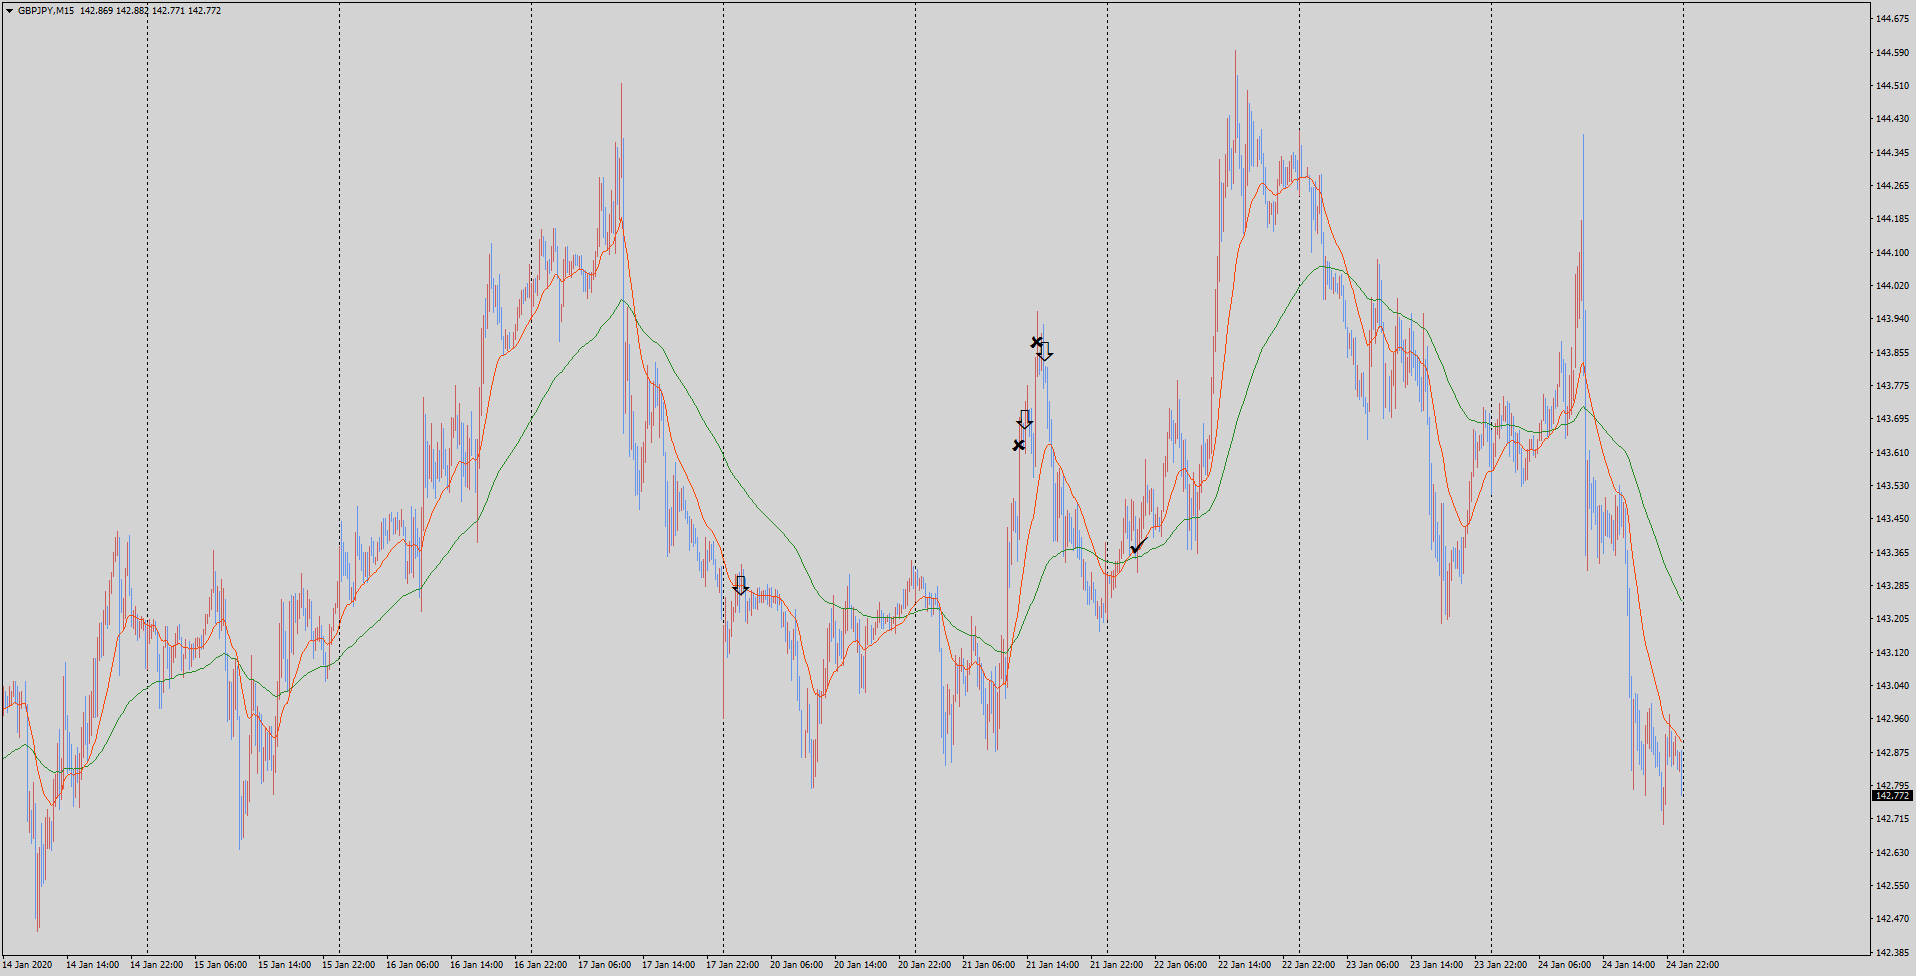 gbpjpy-m15-tradexfin-limited.png